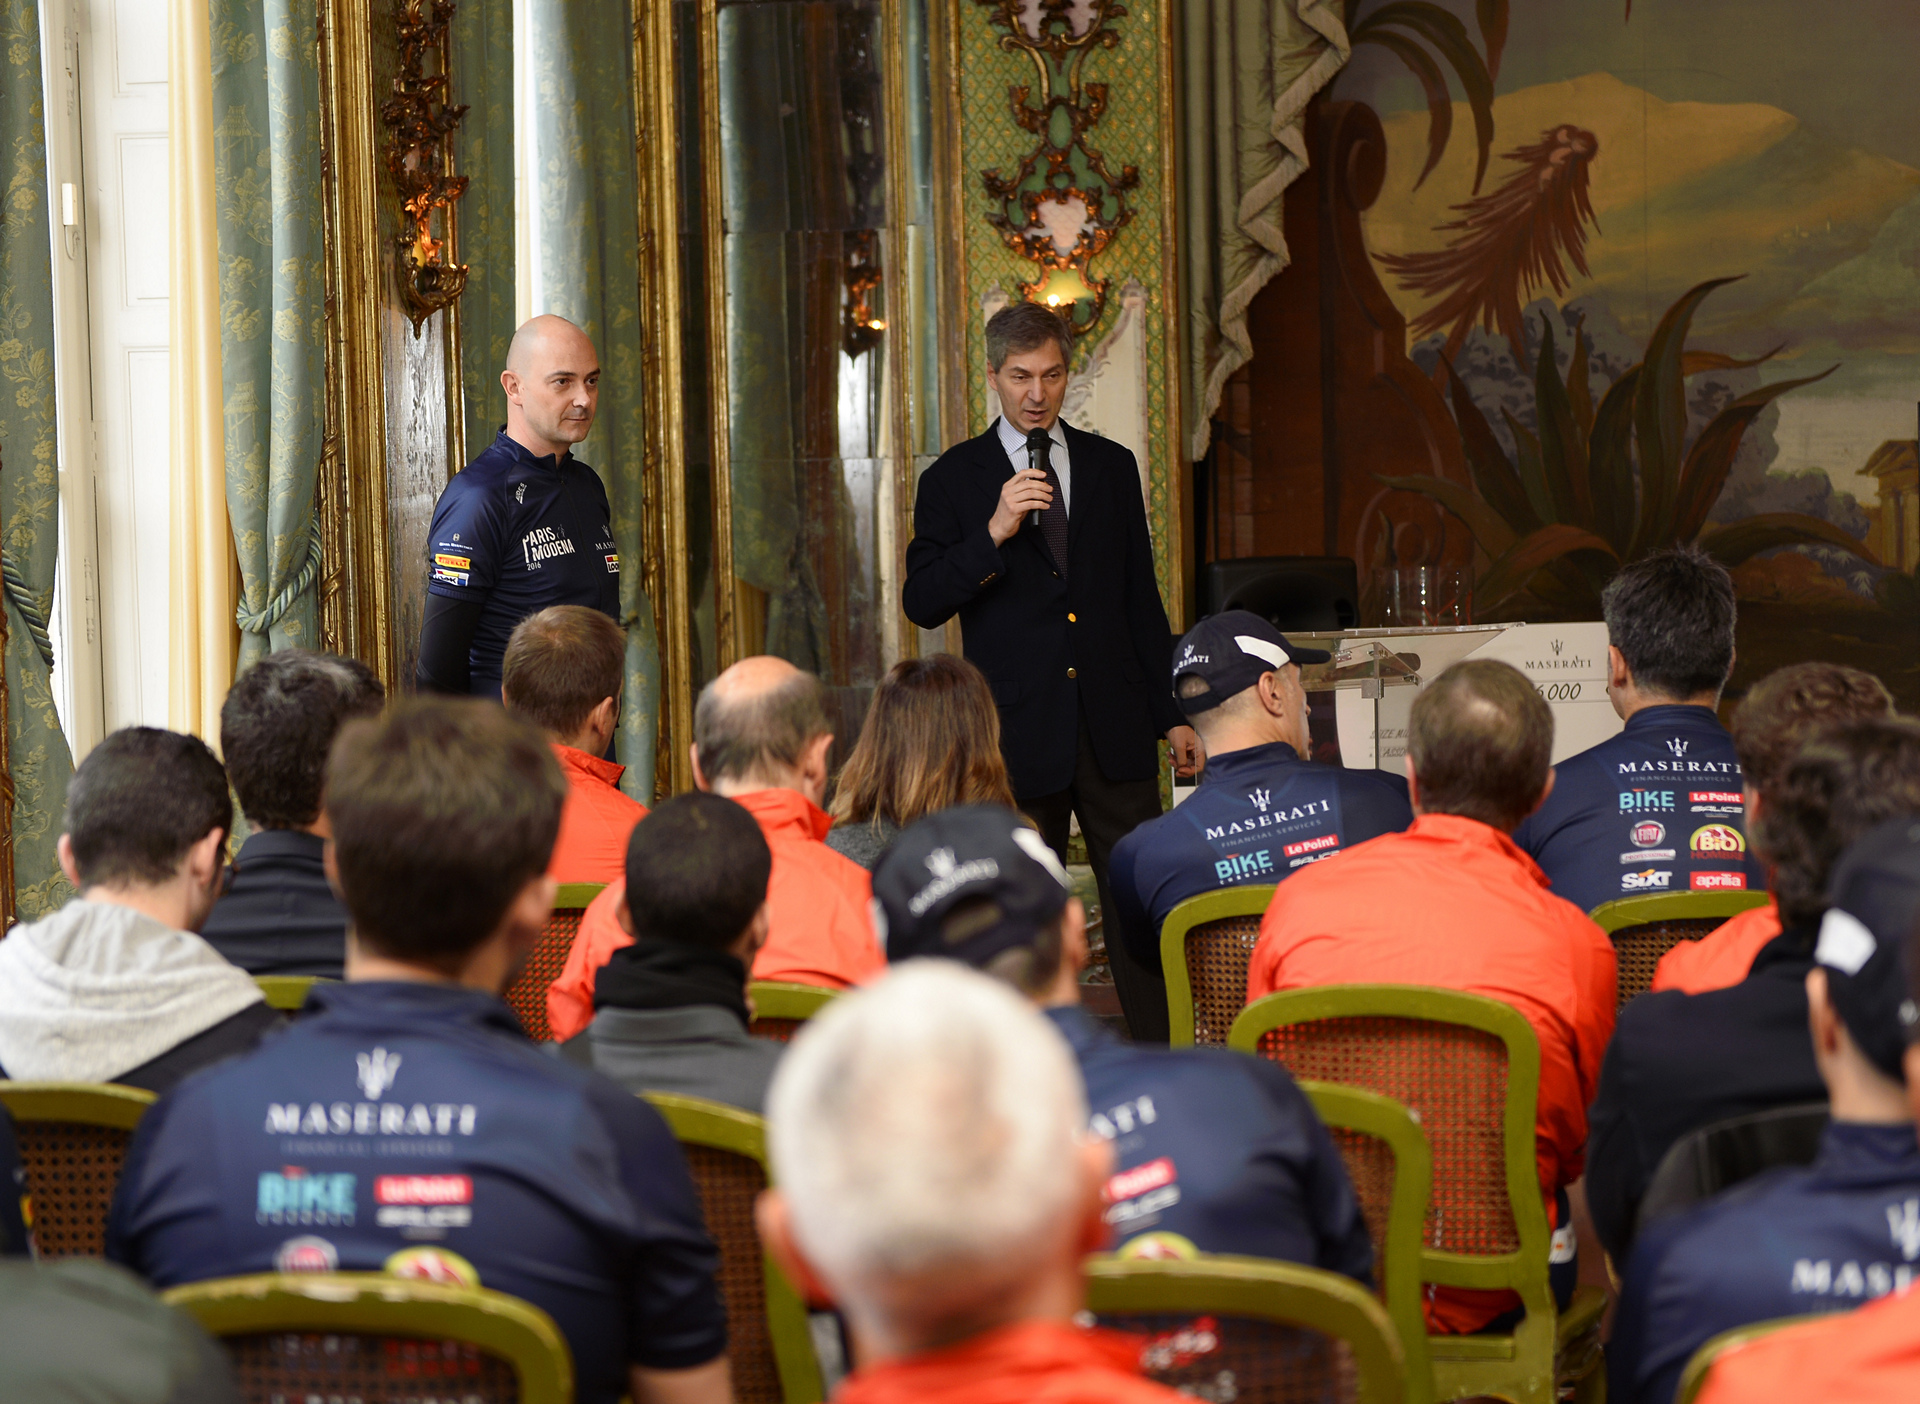 Press Conference before the start of the Paris Modena (in the picture from the left Guido Giovannelli, Head of Maserati West Europe and H.E. the Italian Ambassador in France Giandomenico Magliano) © Fiat Chrysler Automobiles N.V.